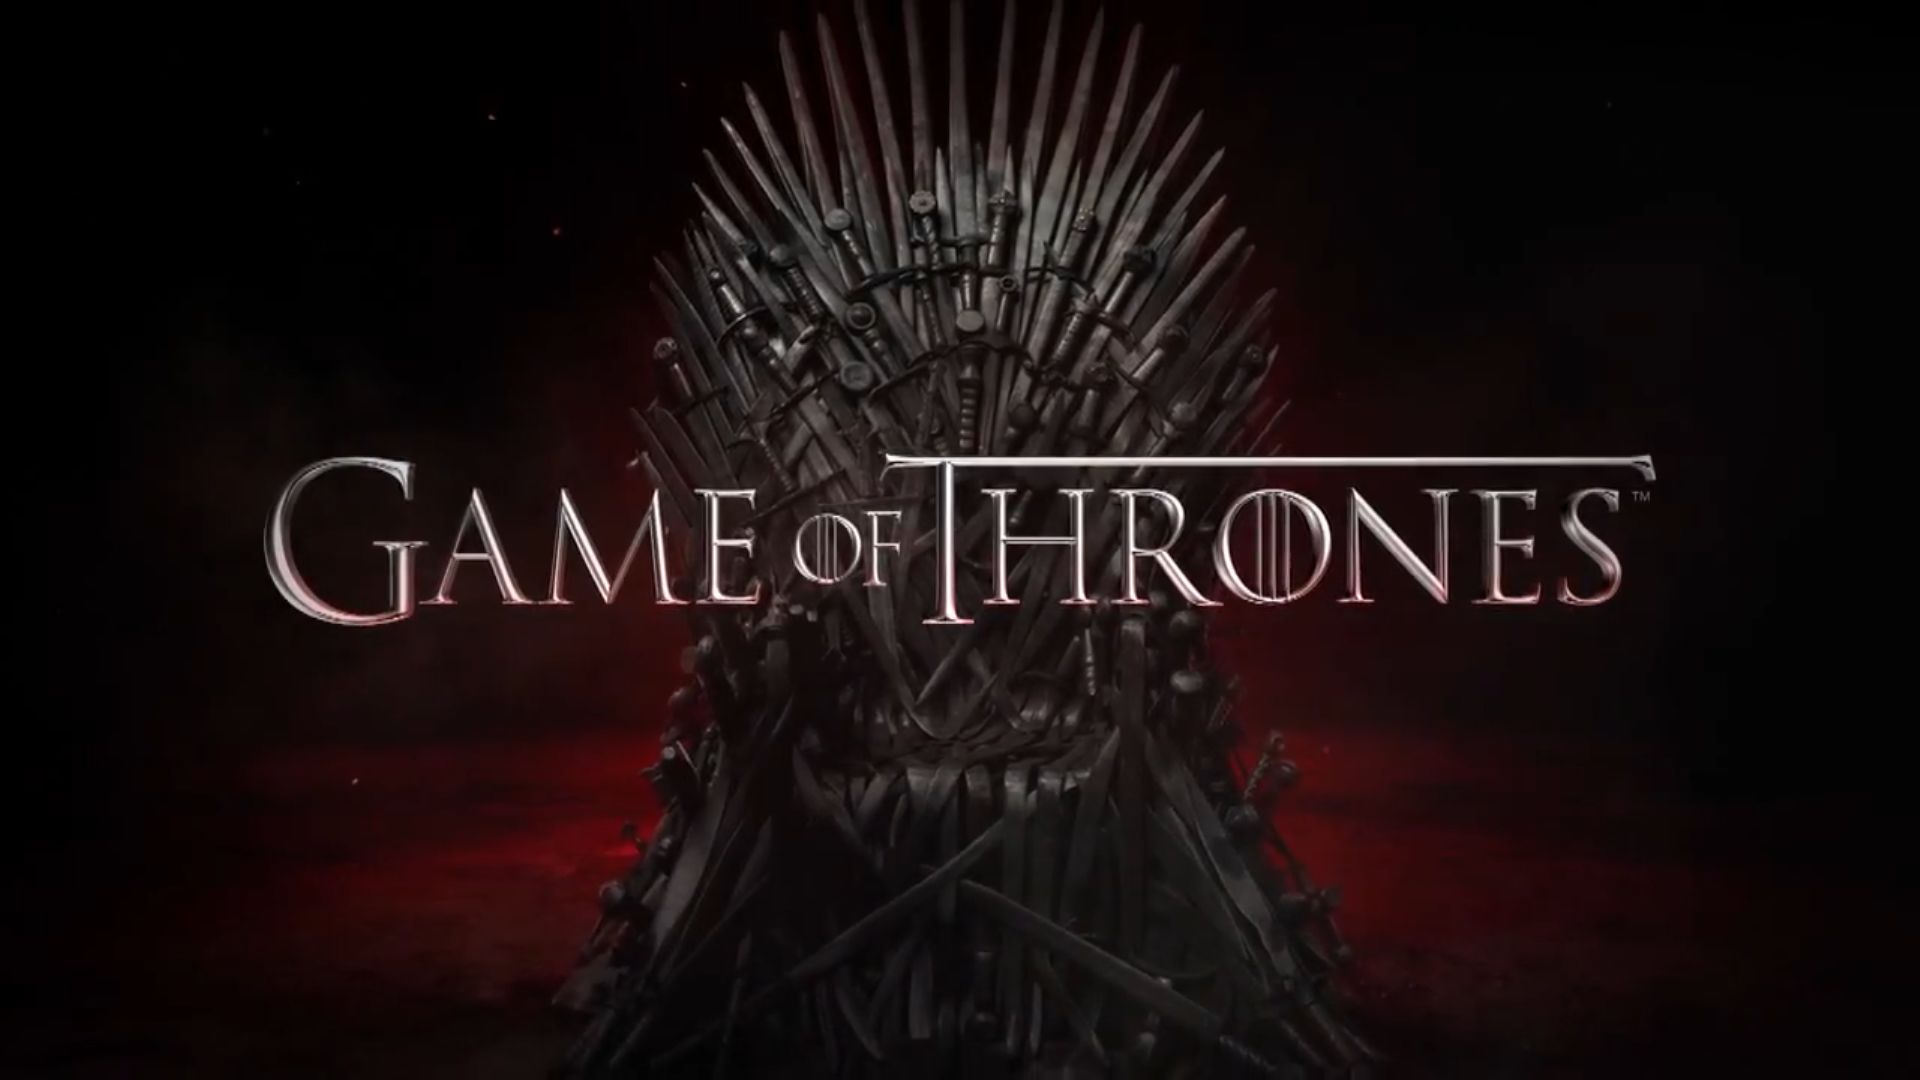 desktop wallpaper game of thrones, download game of thrones for free